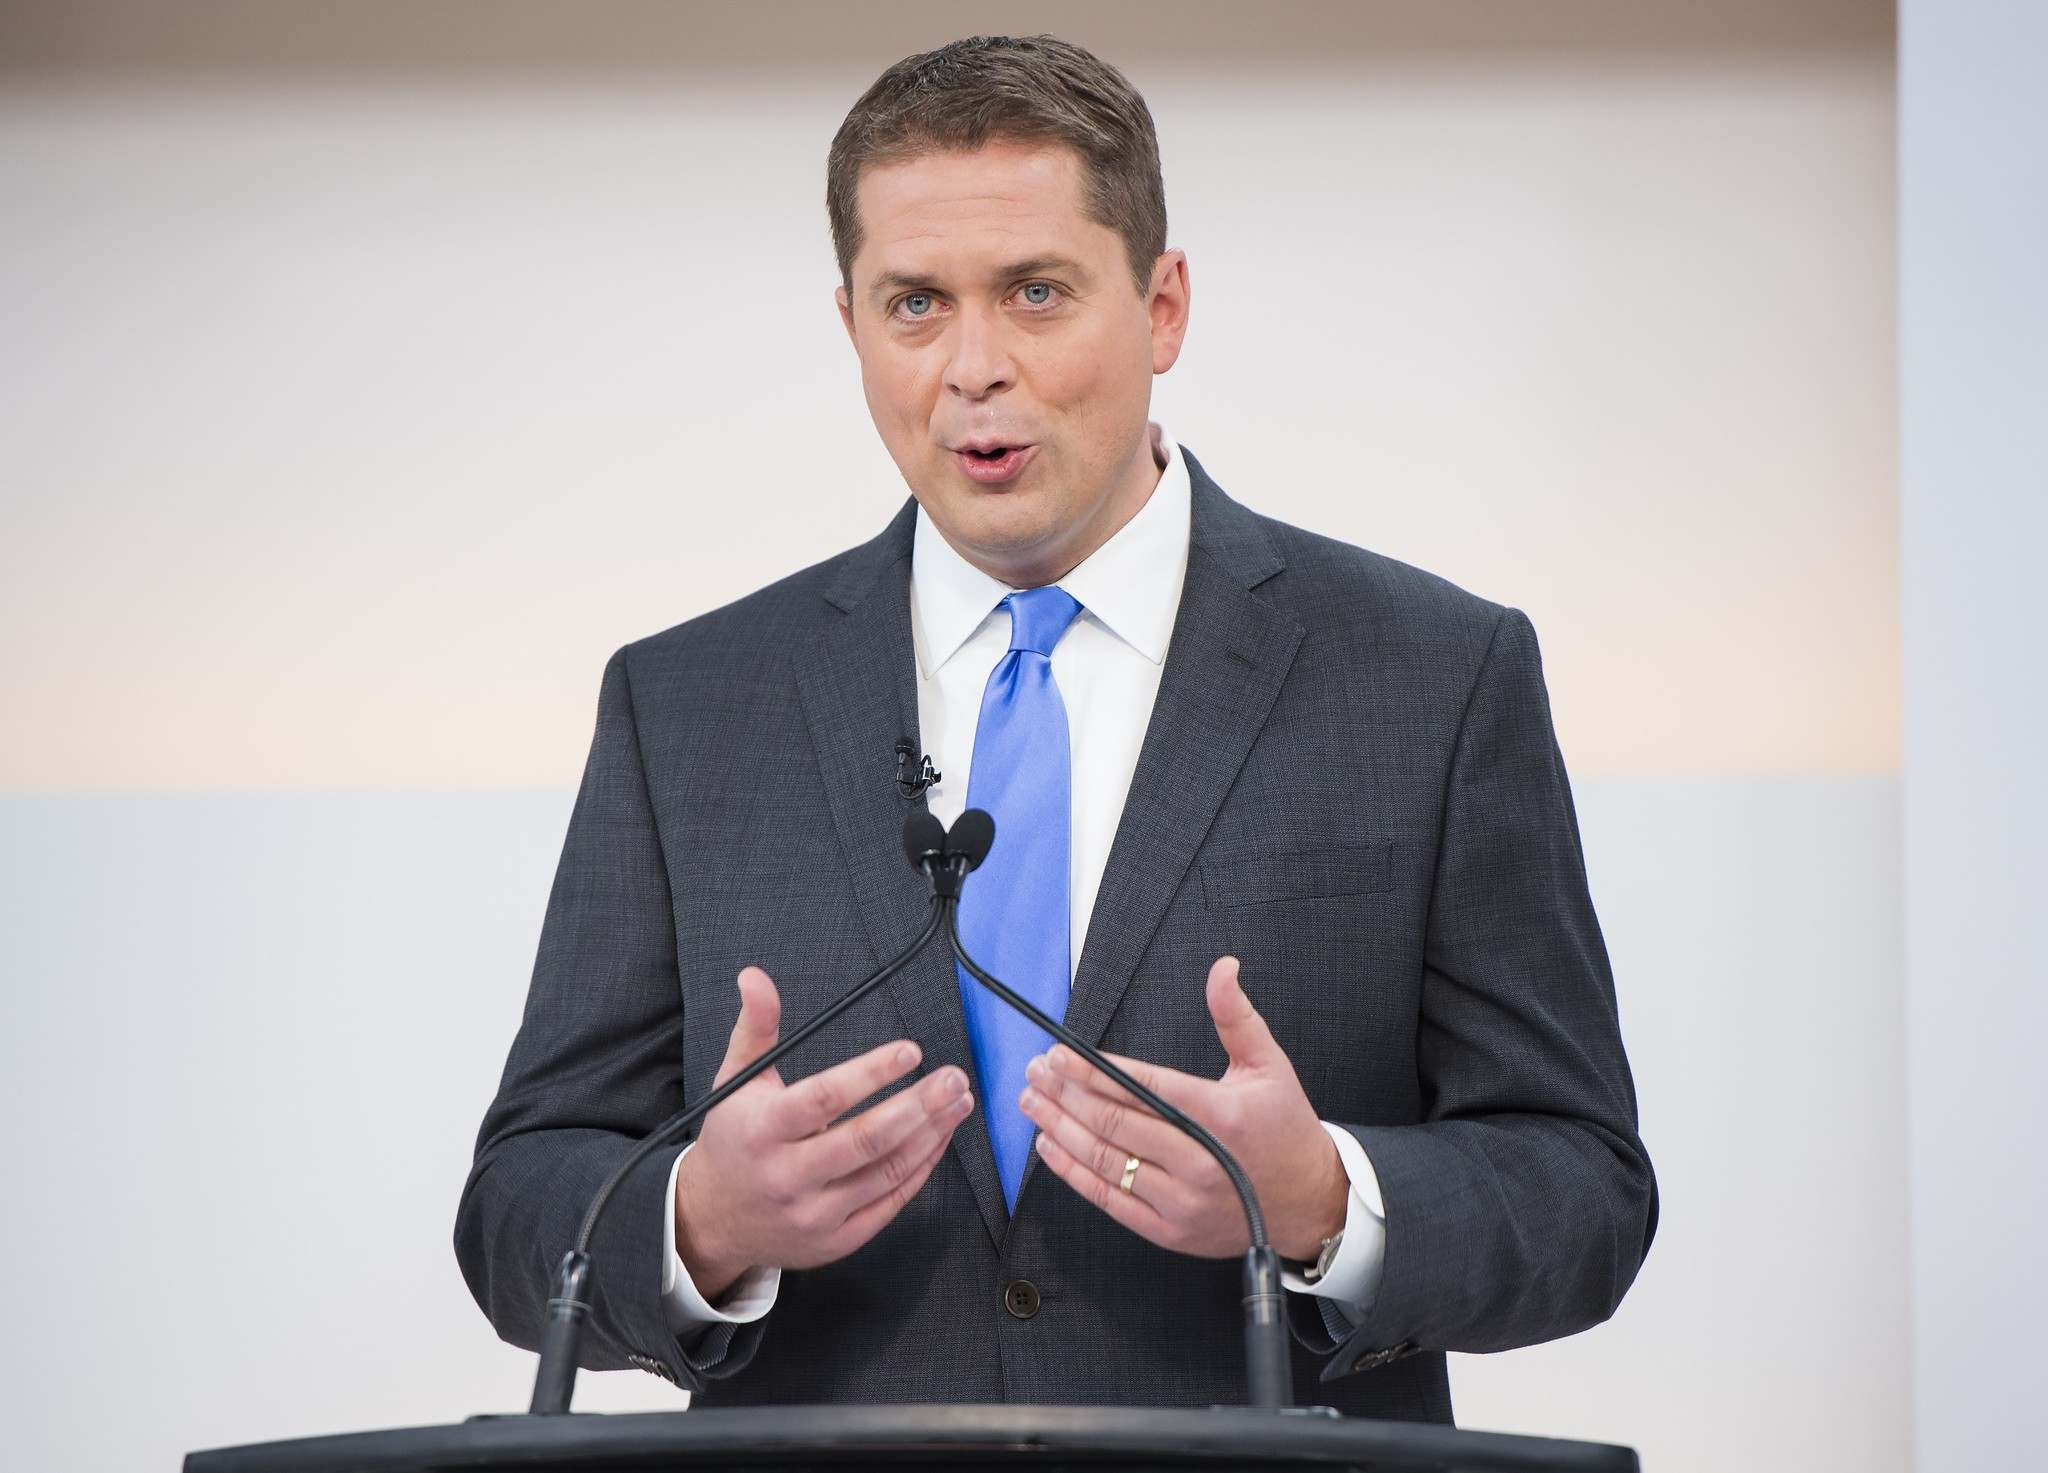 THE CANADIAN PRESS/Frank Gunn</p><p>Conservative Leader Andrew Scheer speaks during the National Leaders Debate in Toronto on Thursday.</p>